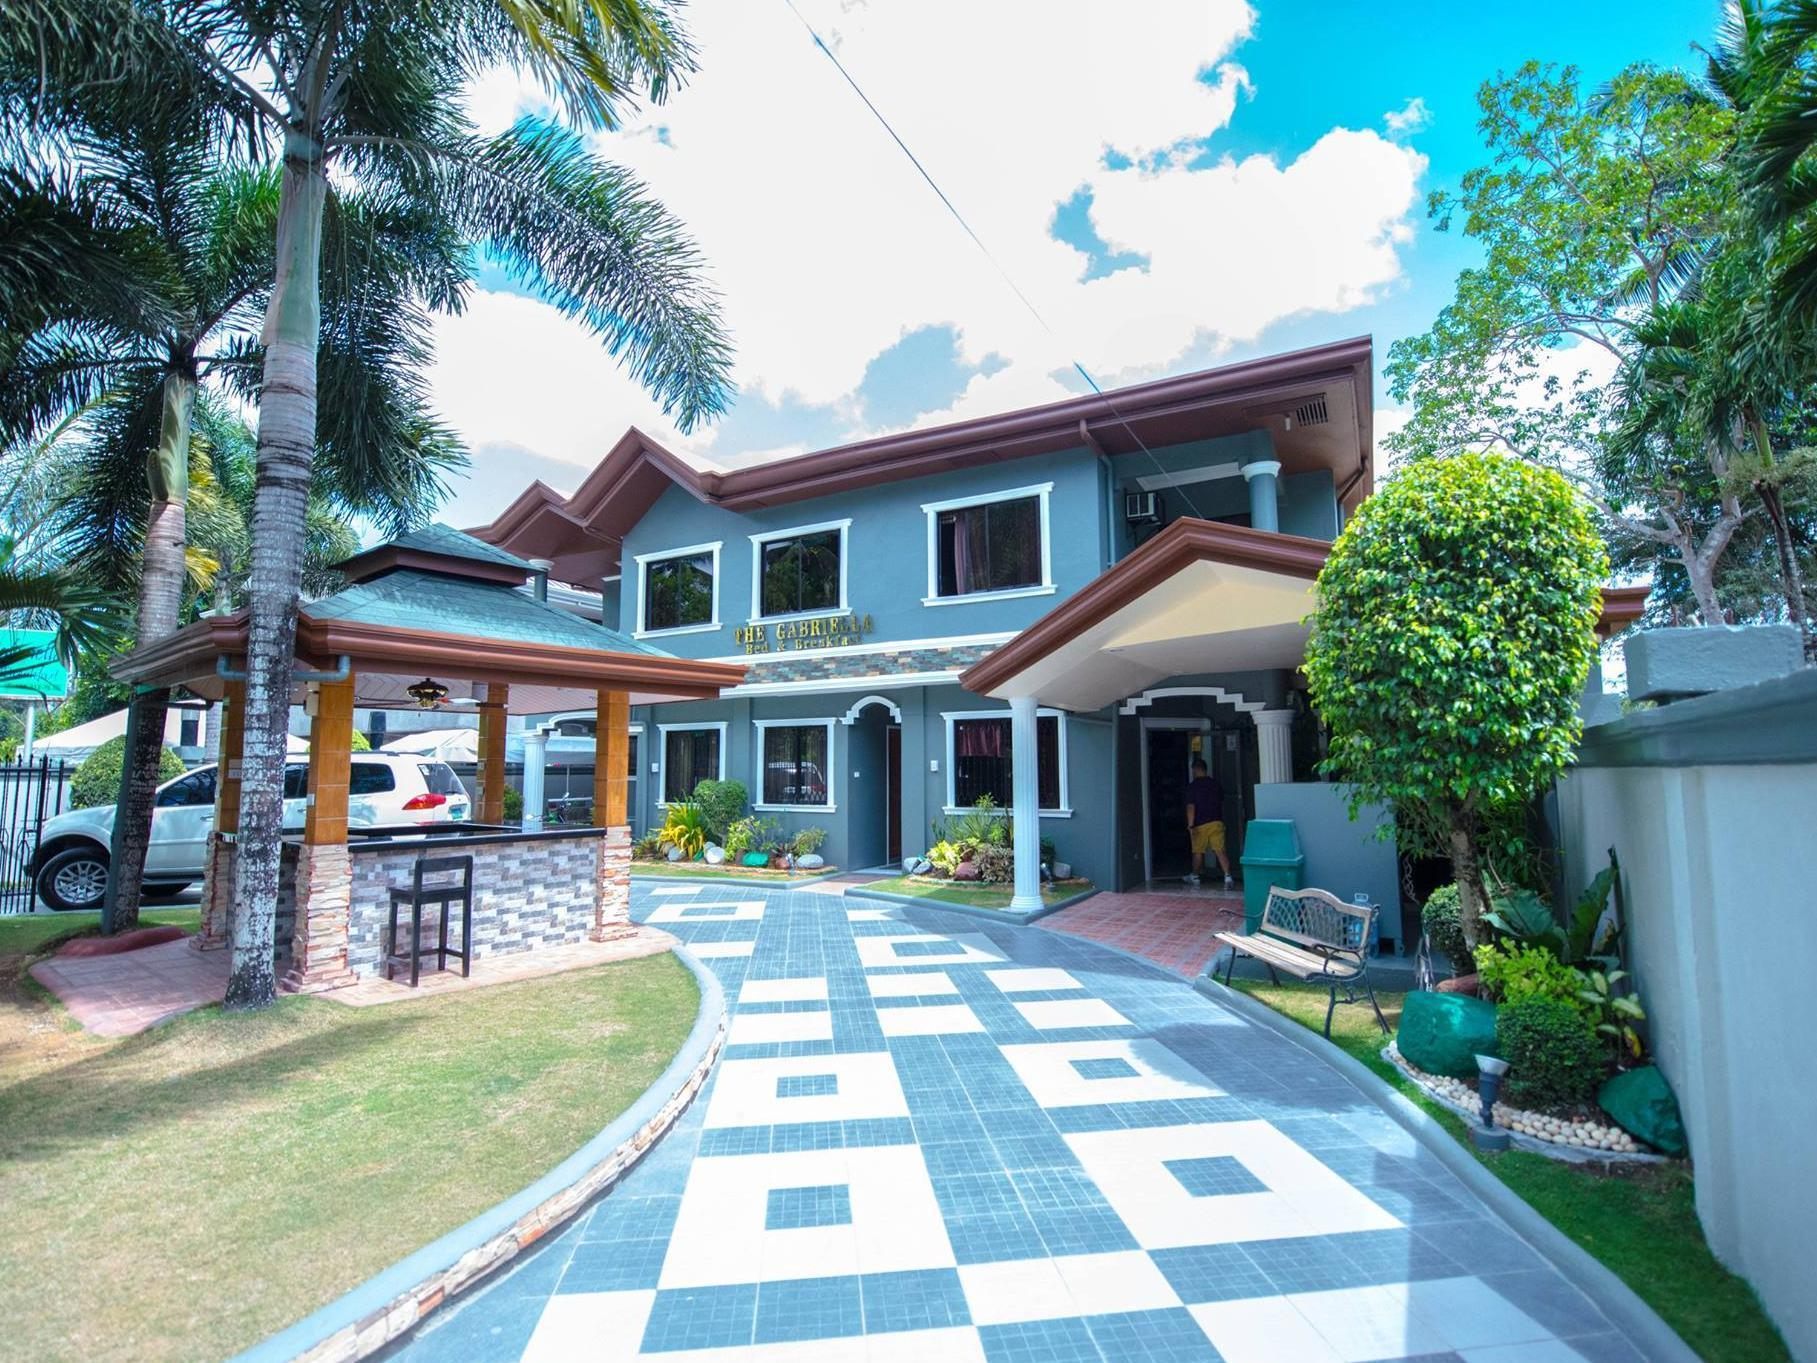 The Gabriella Bed and Breakfast Bohol